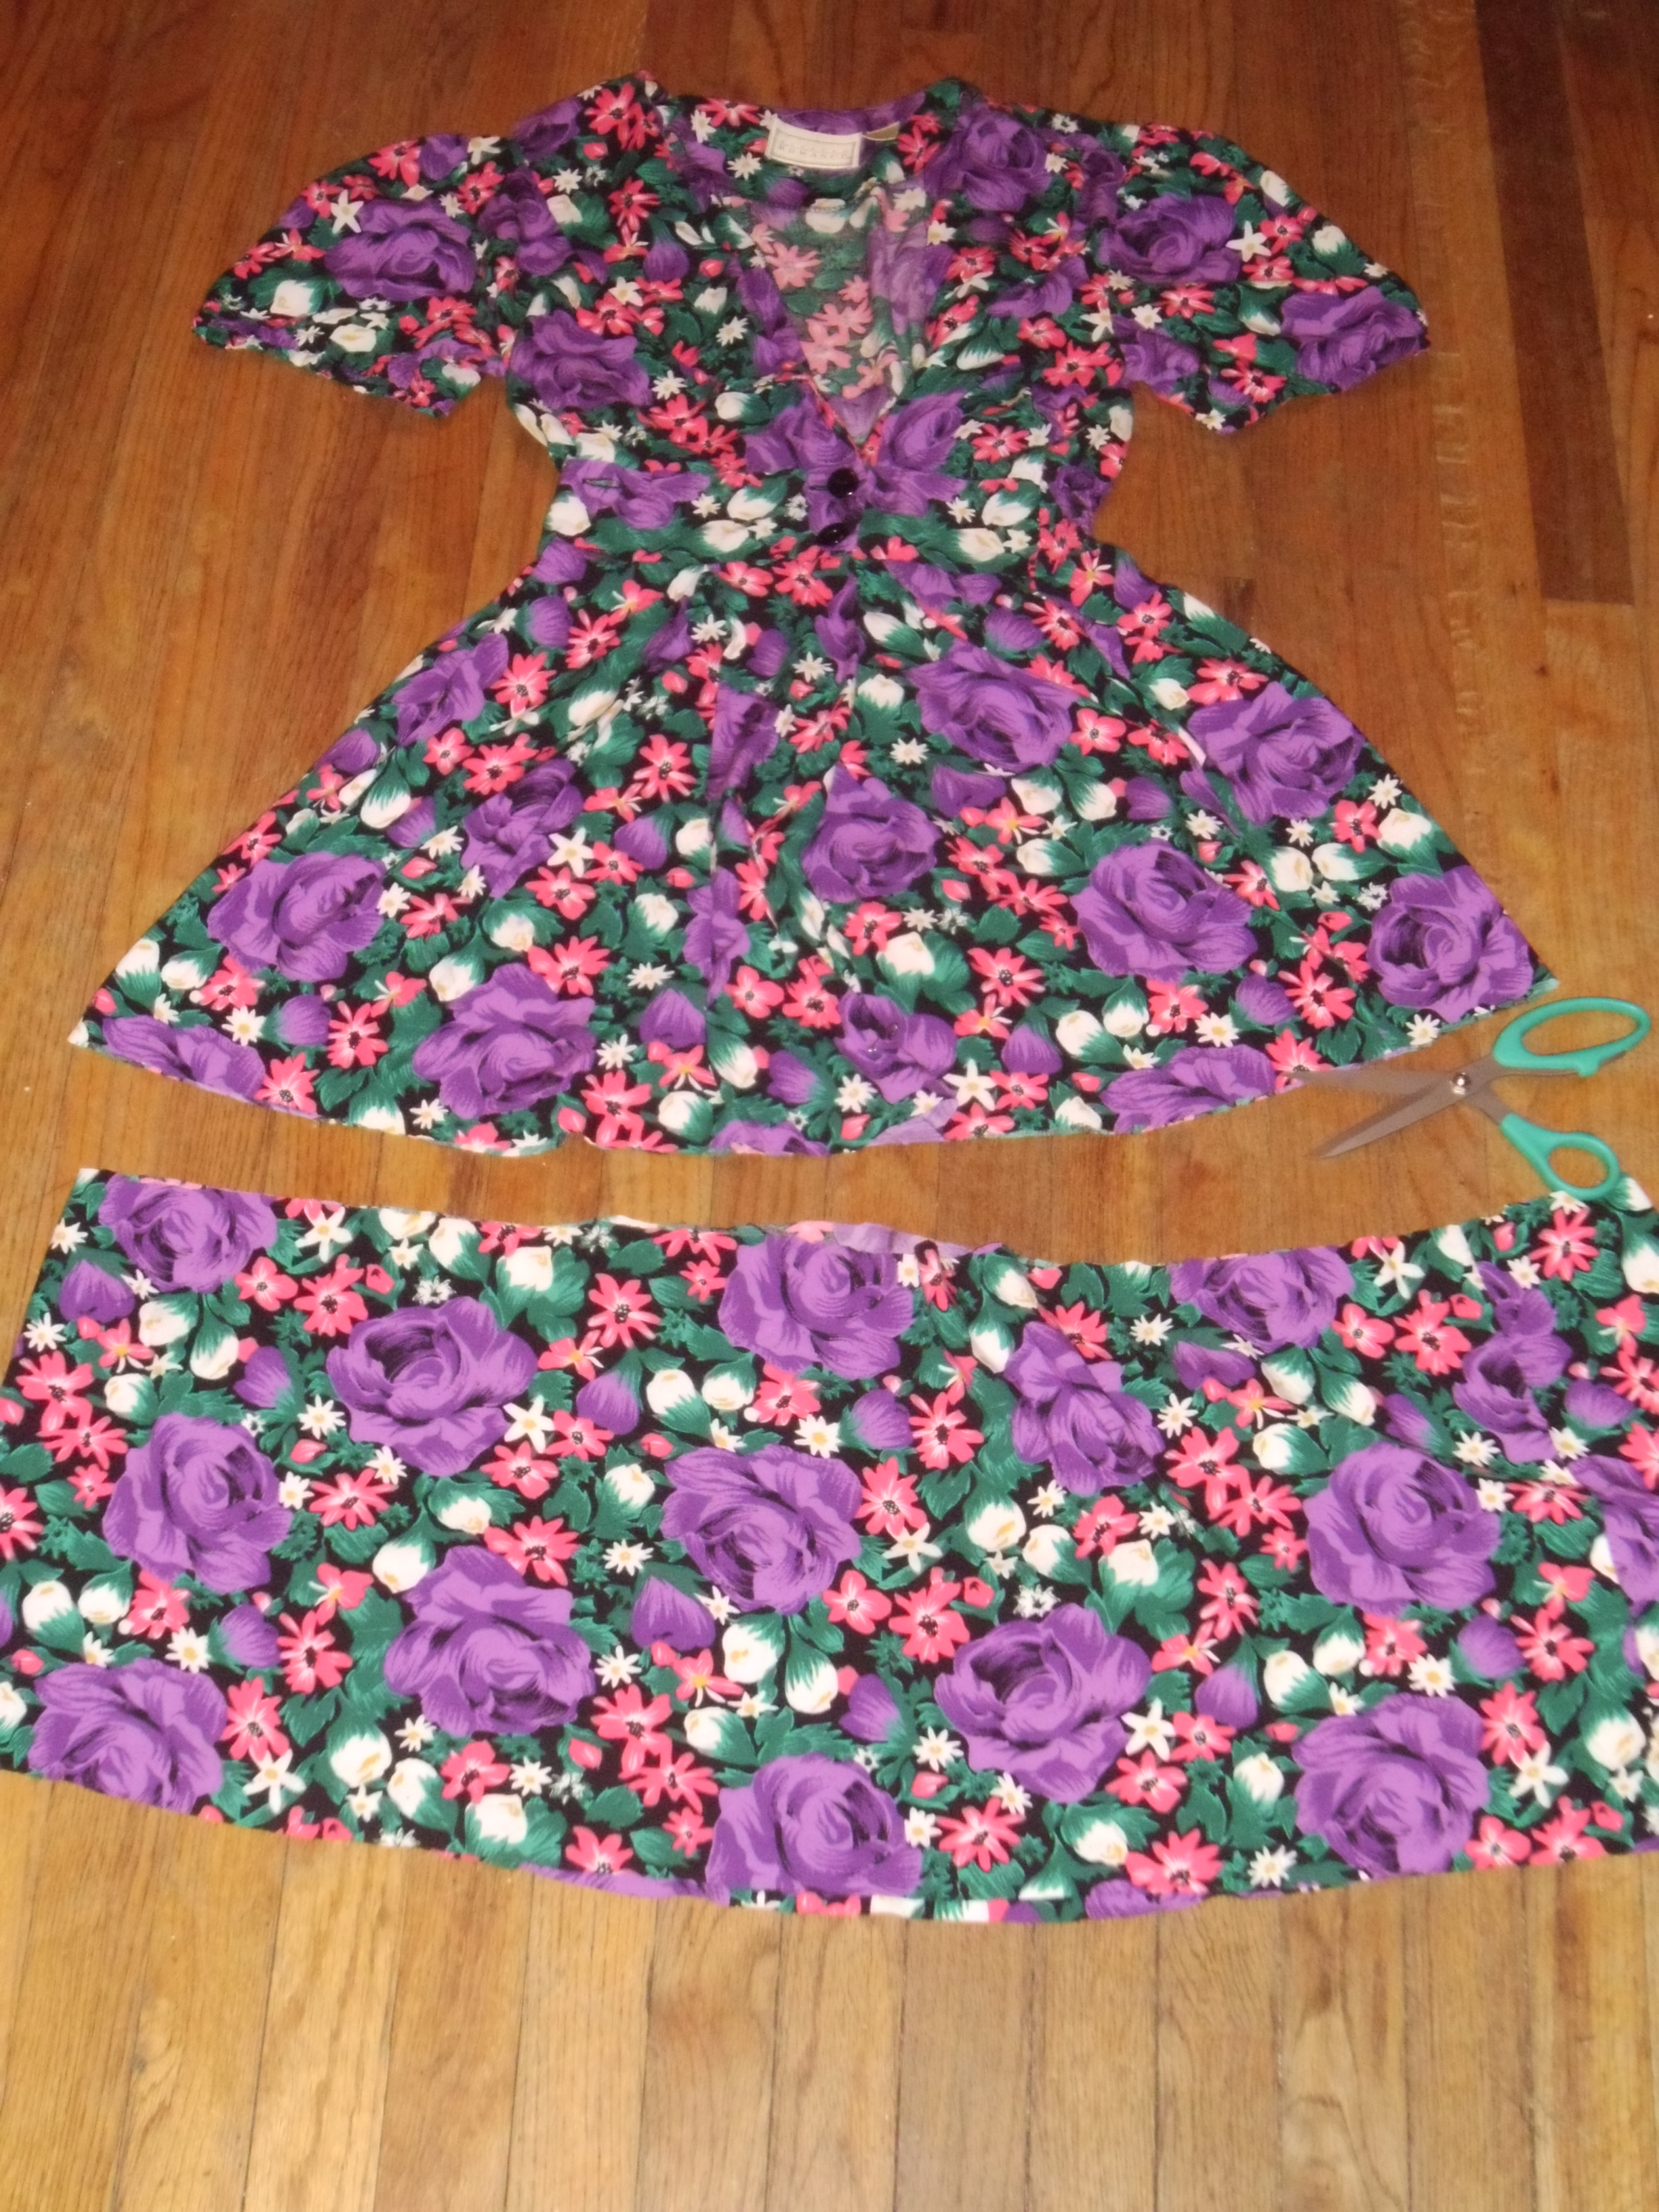 Day 194: Flowers for a Rainy Day Dress 4